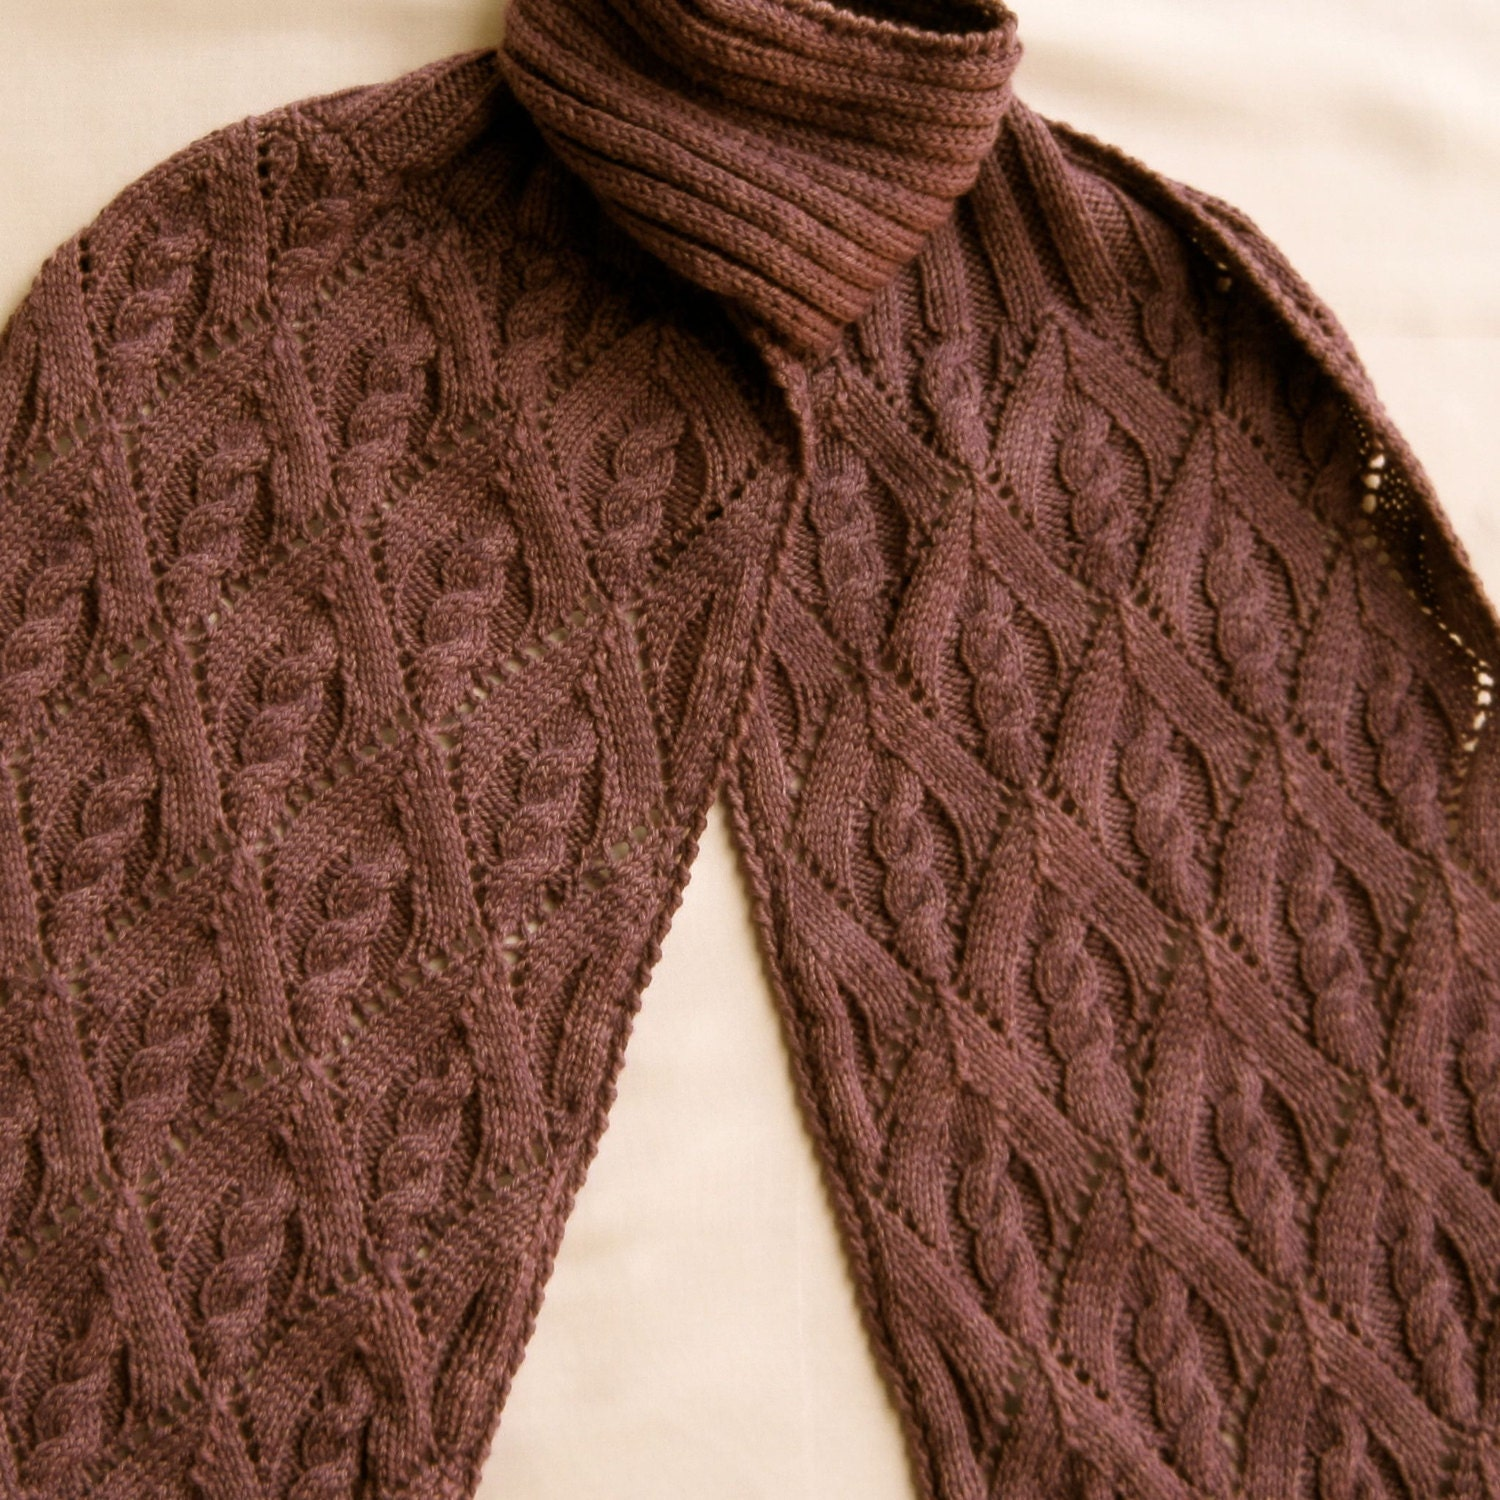 Knit Scarf Pattern: My Favorite Cable Lace Turtleneck Scarf